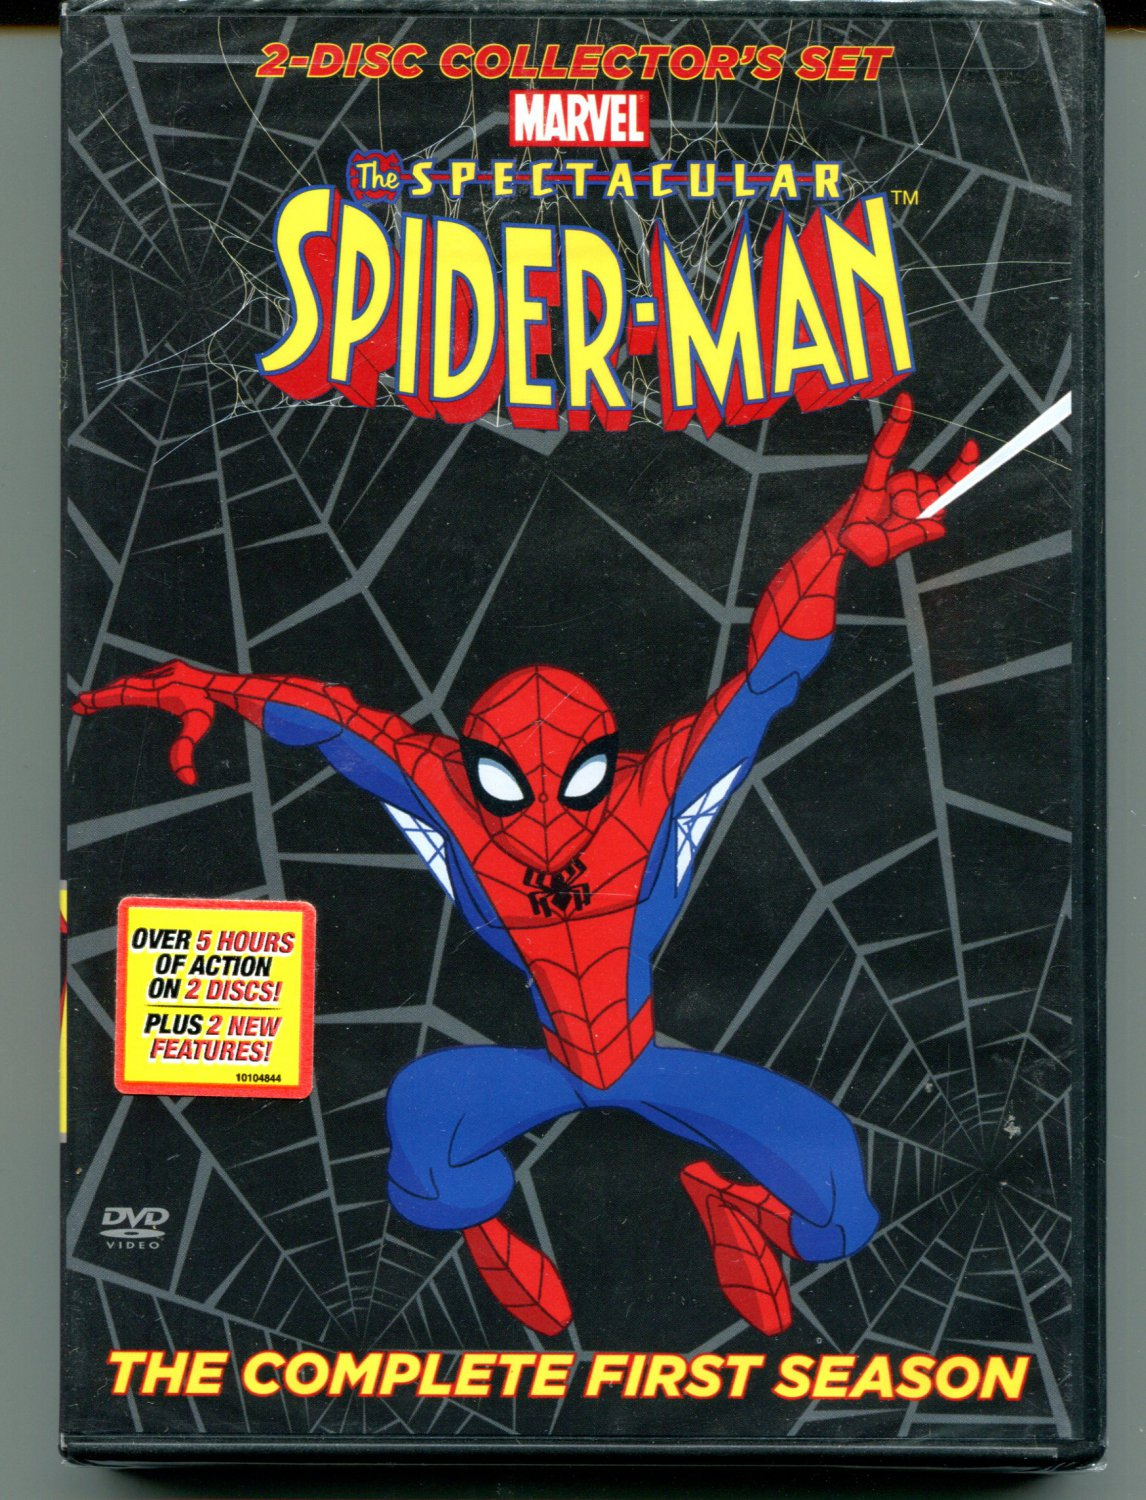 The Spectacular Spider-Man: Season 1 (2 disc collector's set 2009)